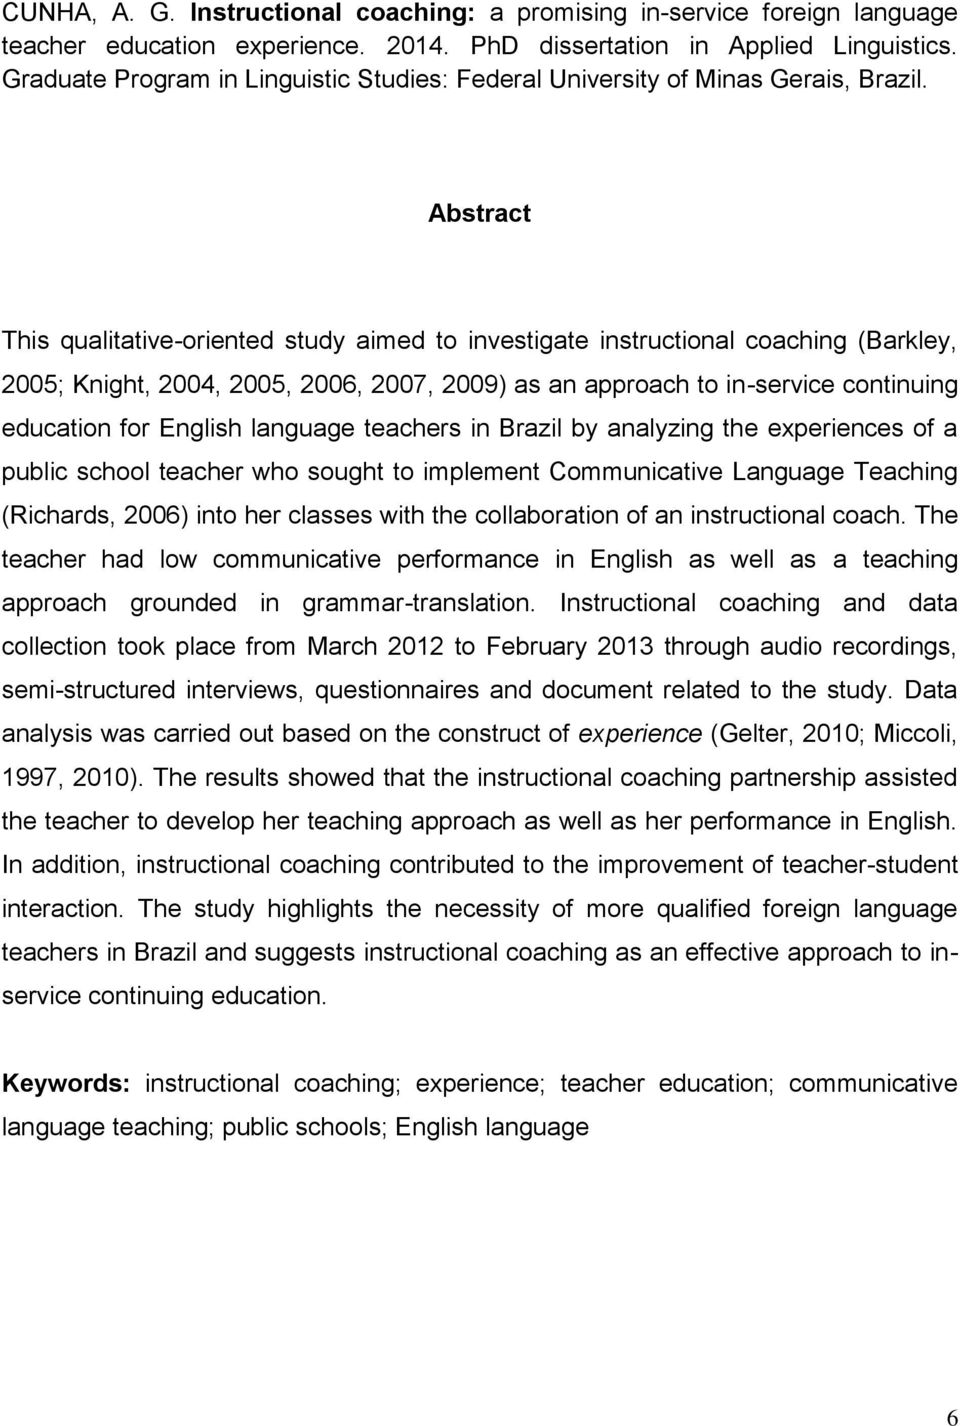 Abstract This qualitative-oriented study aimed to investigate instructional coaching (Barkley, 2005; Knight, 2004, 2005, 2006, 2007, 2009) as an approach to in-service continuing education for